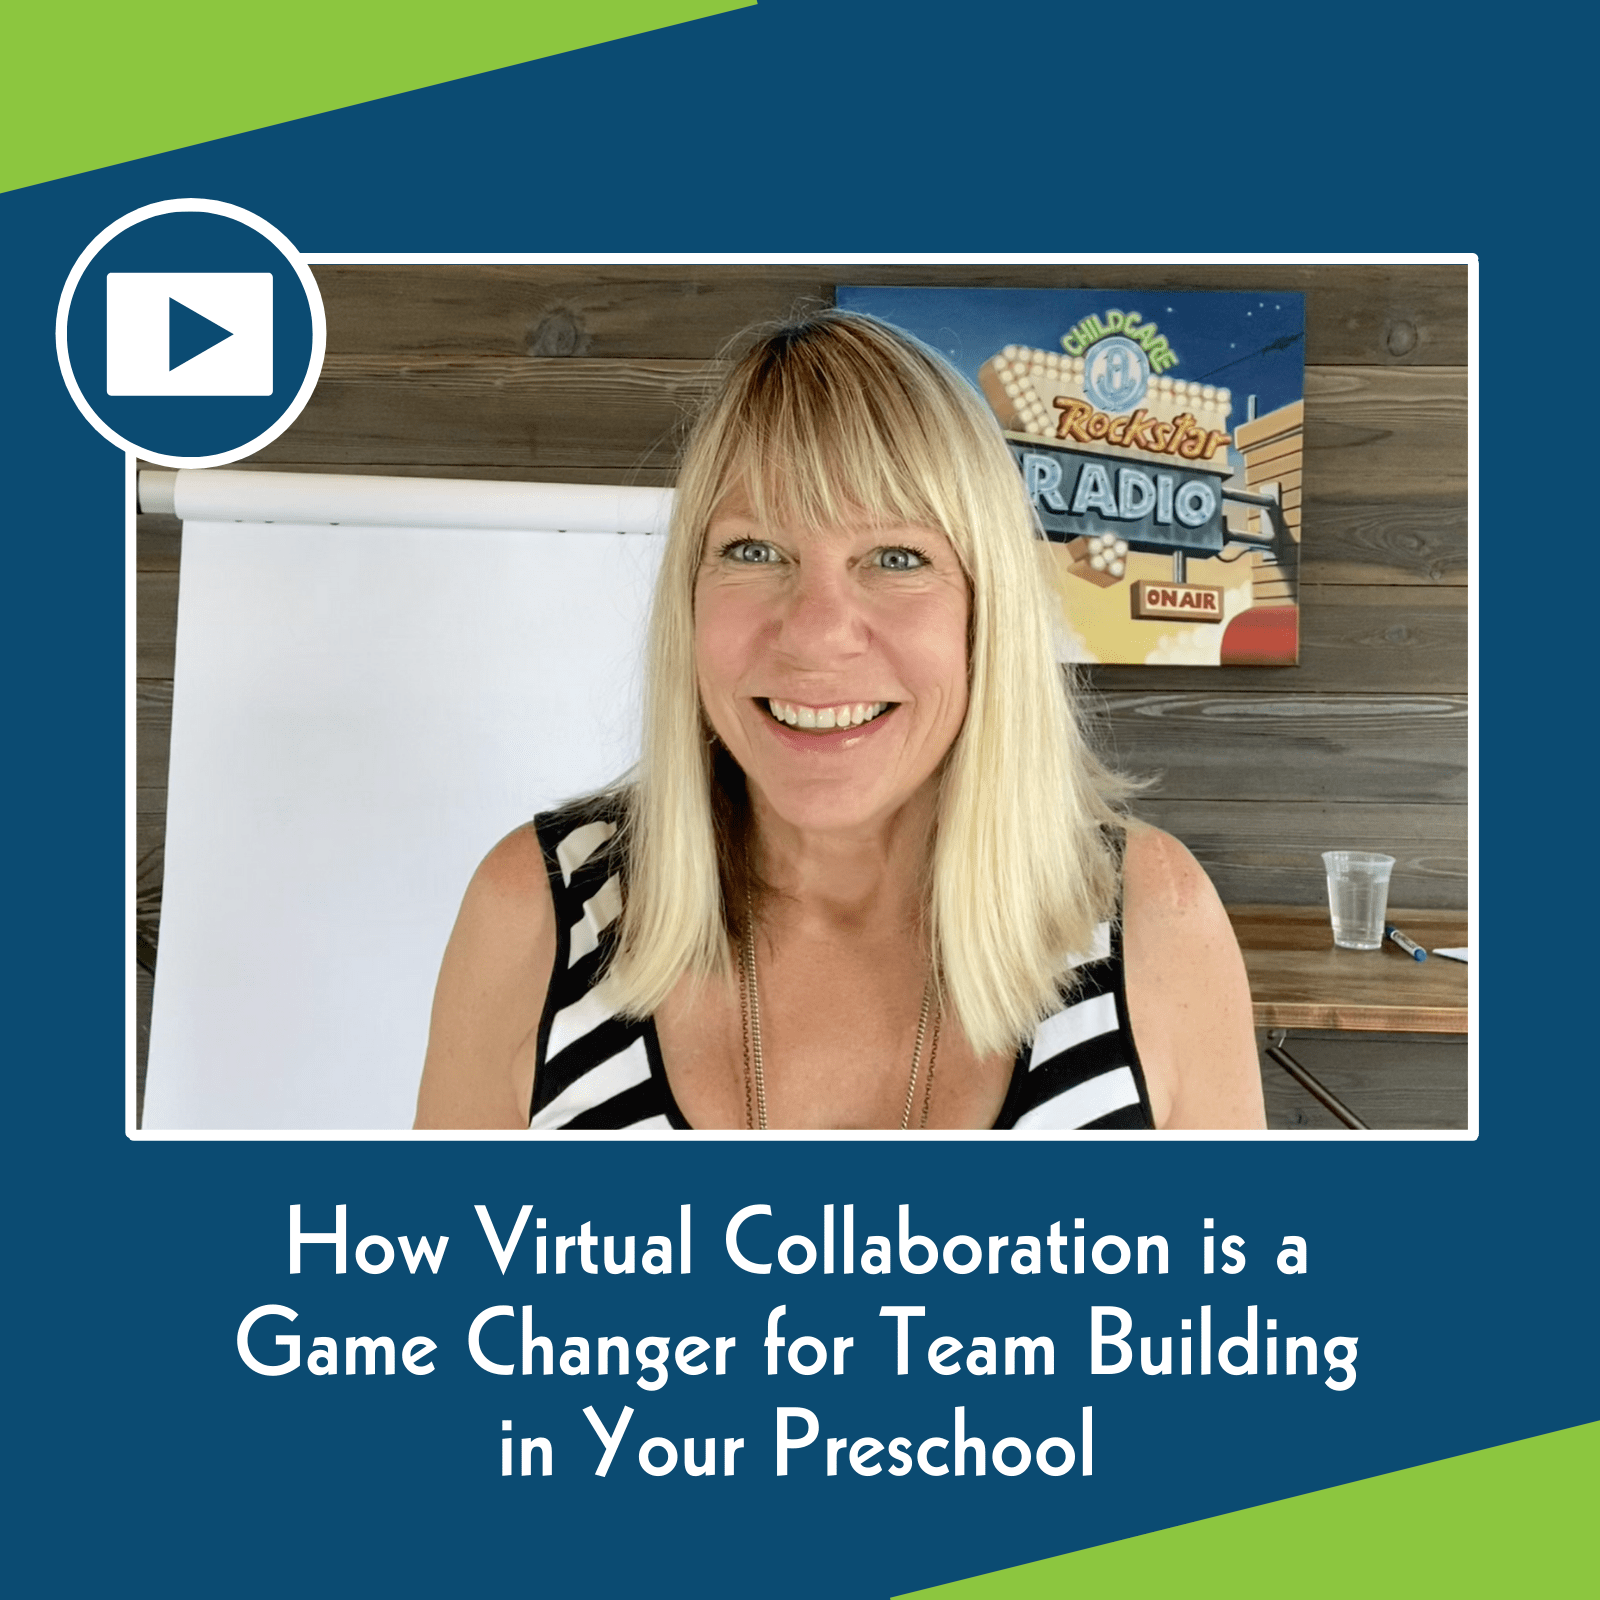 How Virtual Collaboration is a Game Changer for Team Building in Your Preschool